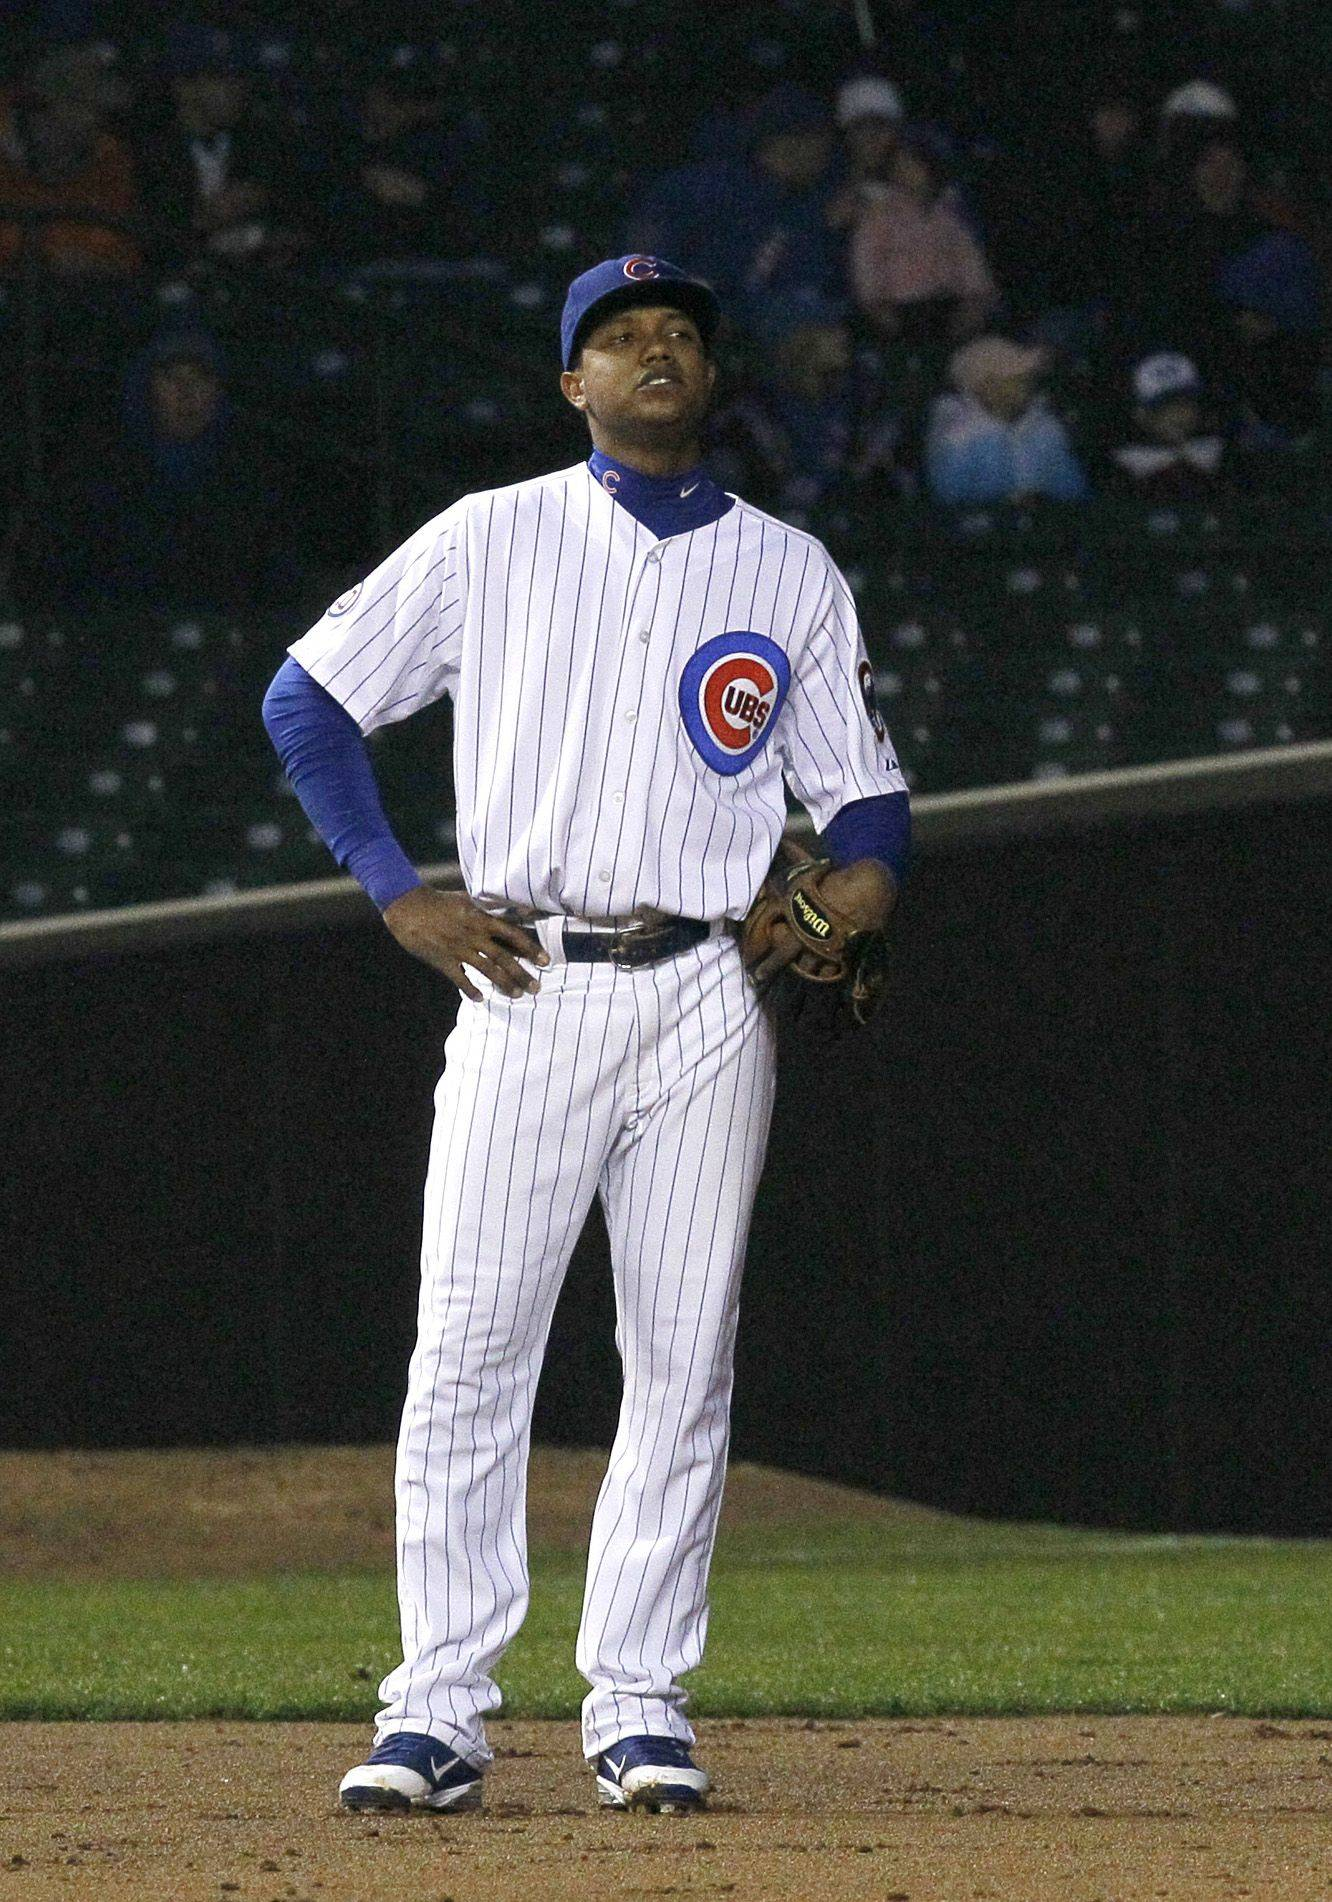 Cubs shortstop Starlin Castro looks up at the scoreboard after committing his third of three errors in Monday's second inning at Wrigley Field.